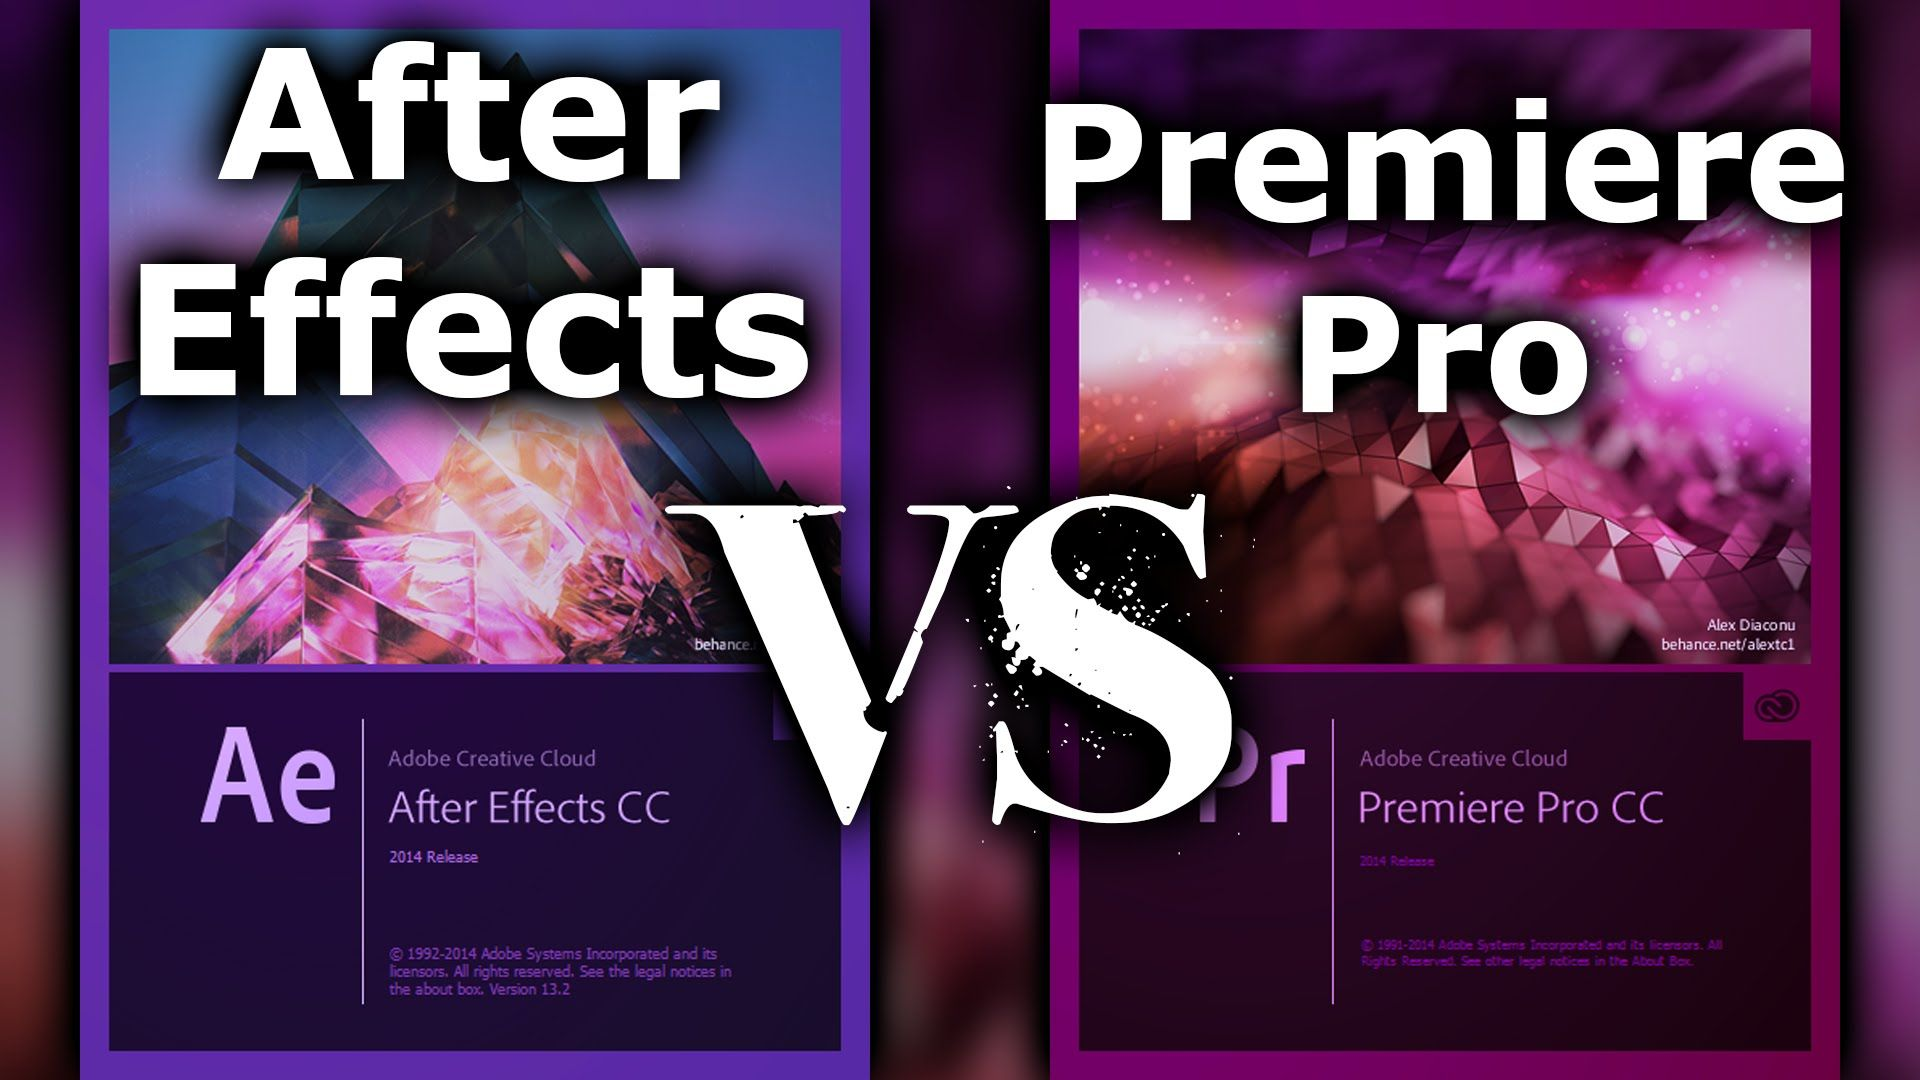 In This Video I Explain The Difference Between Adobe Premiere Pro